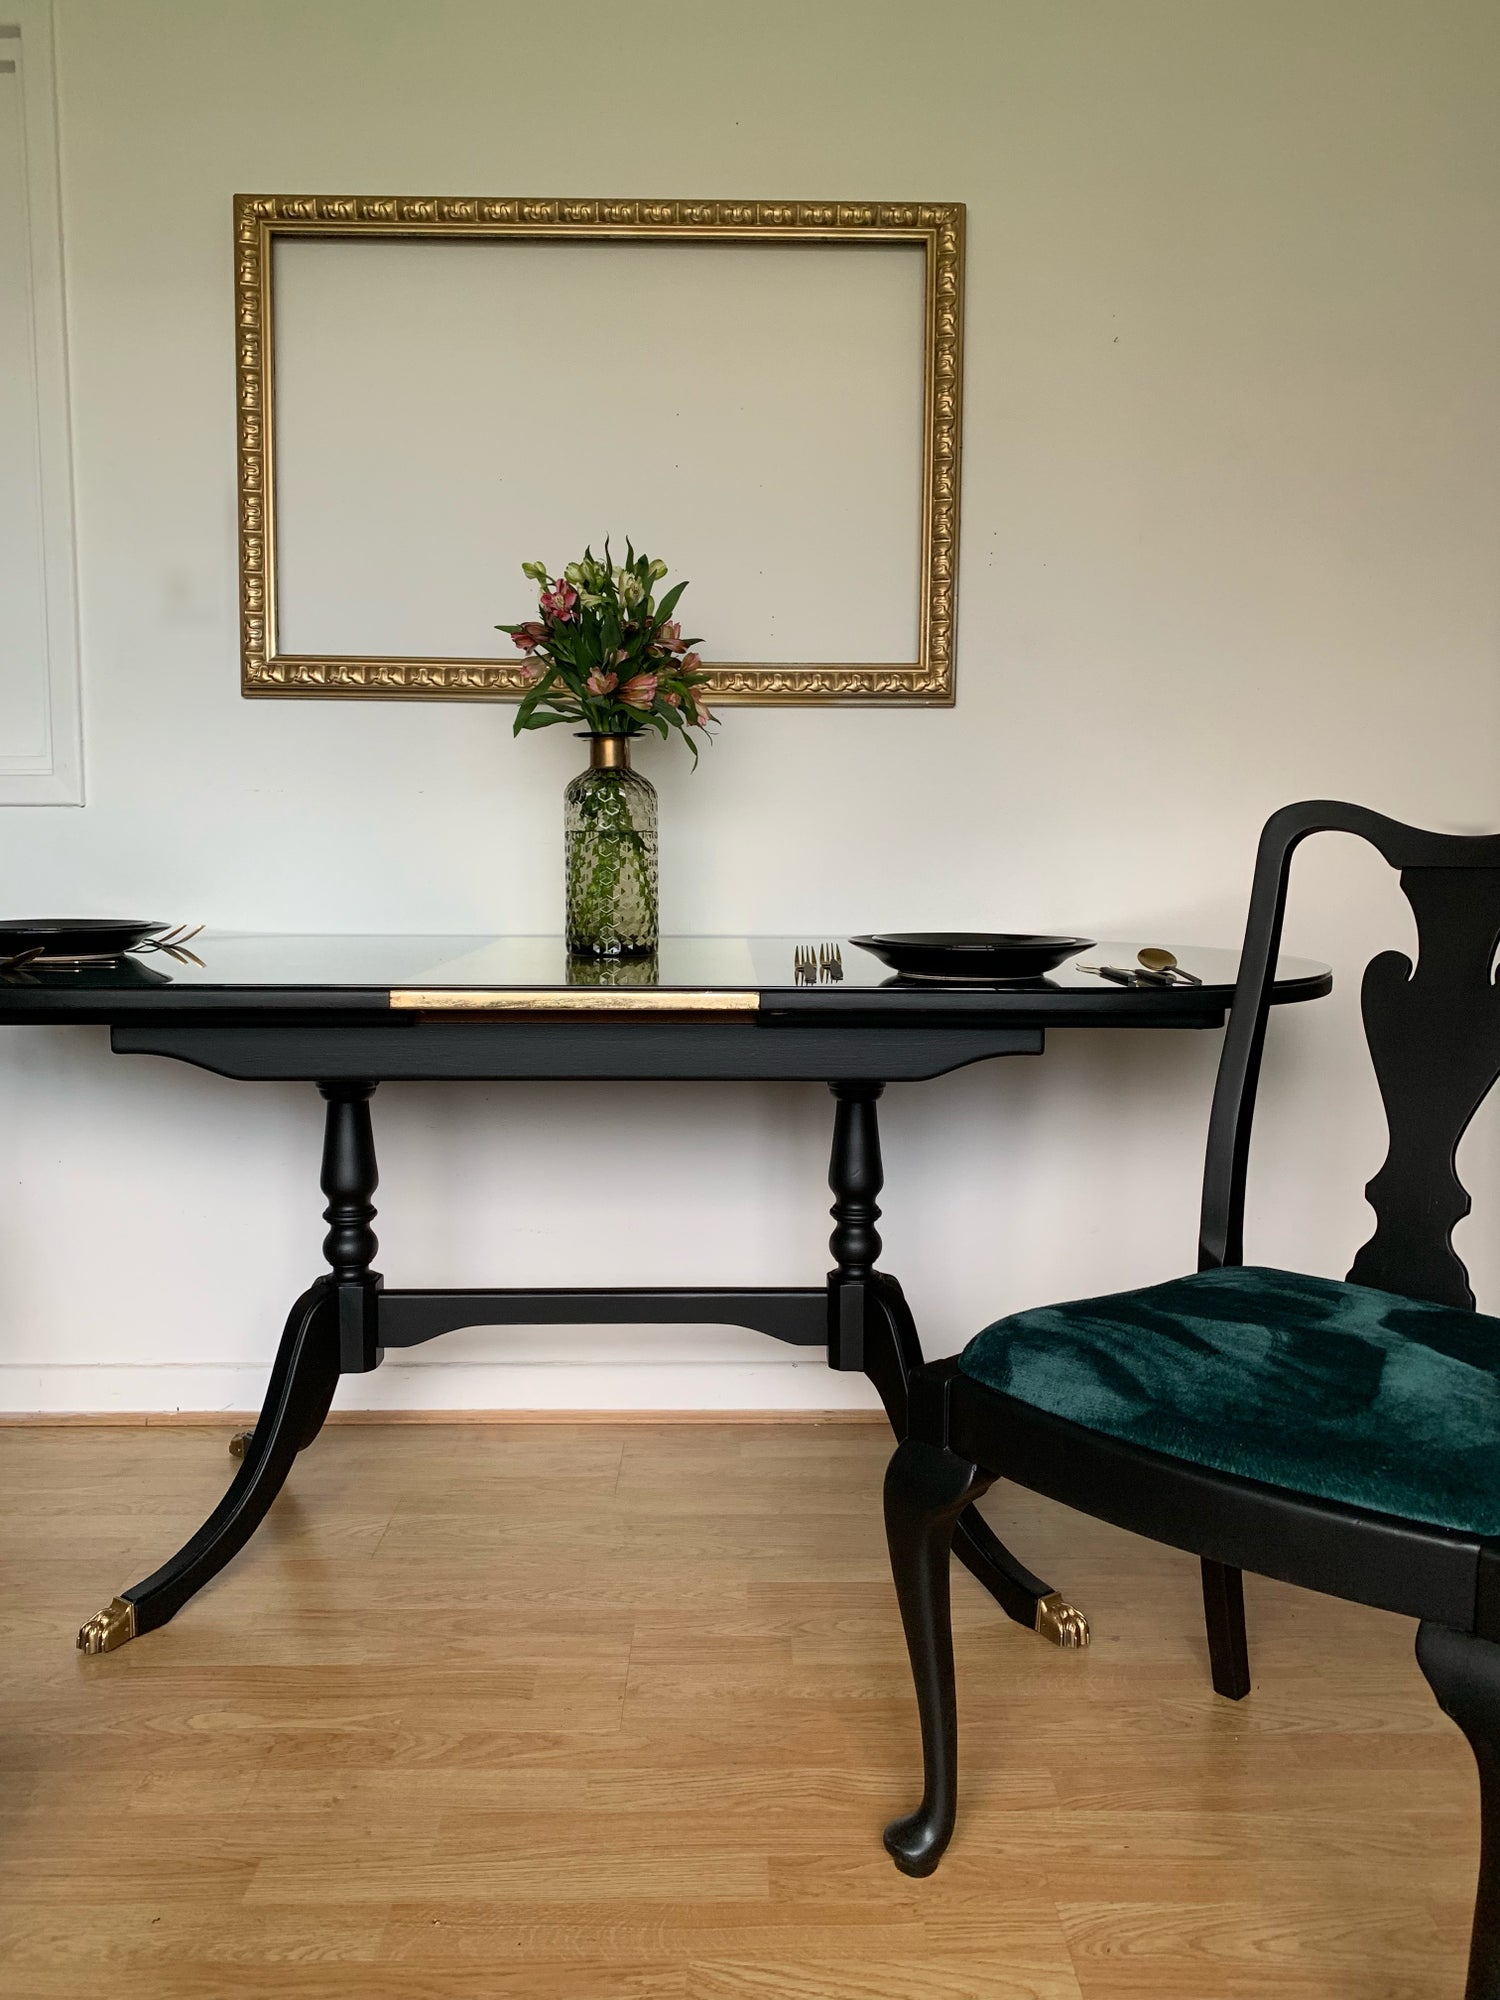 Image of Black & Gold dining table with 6 chairs